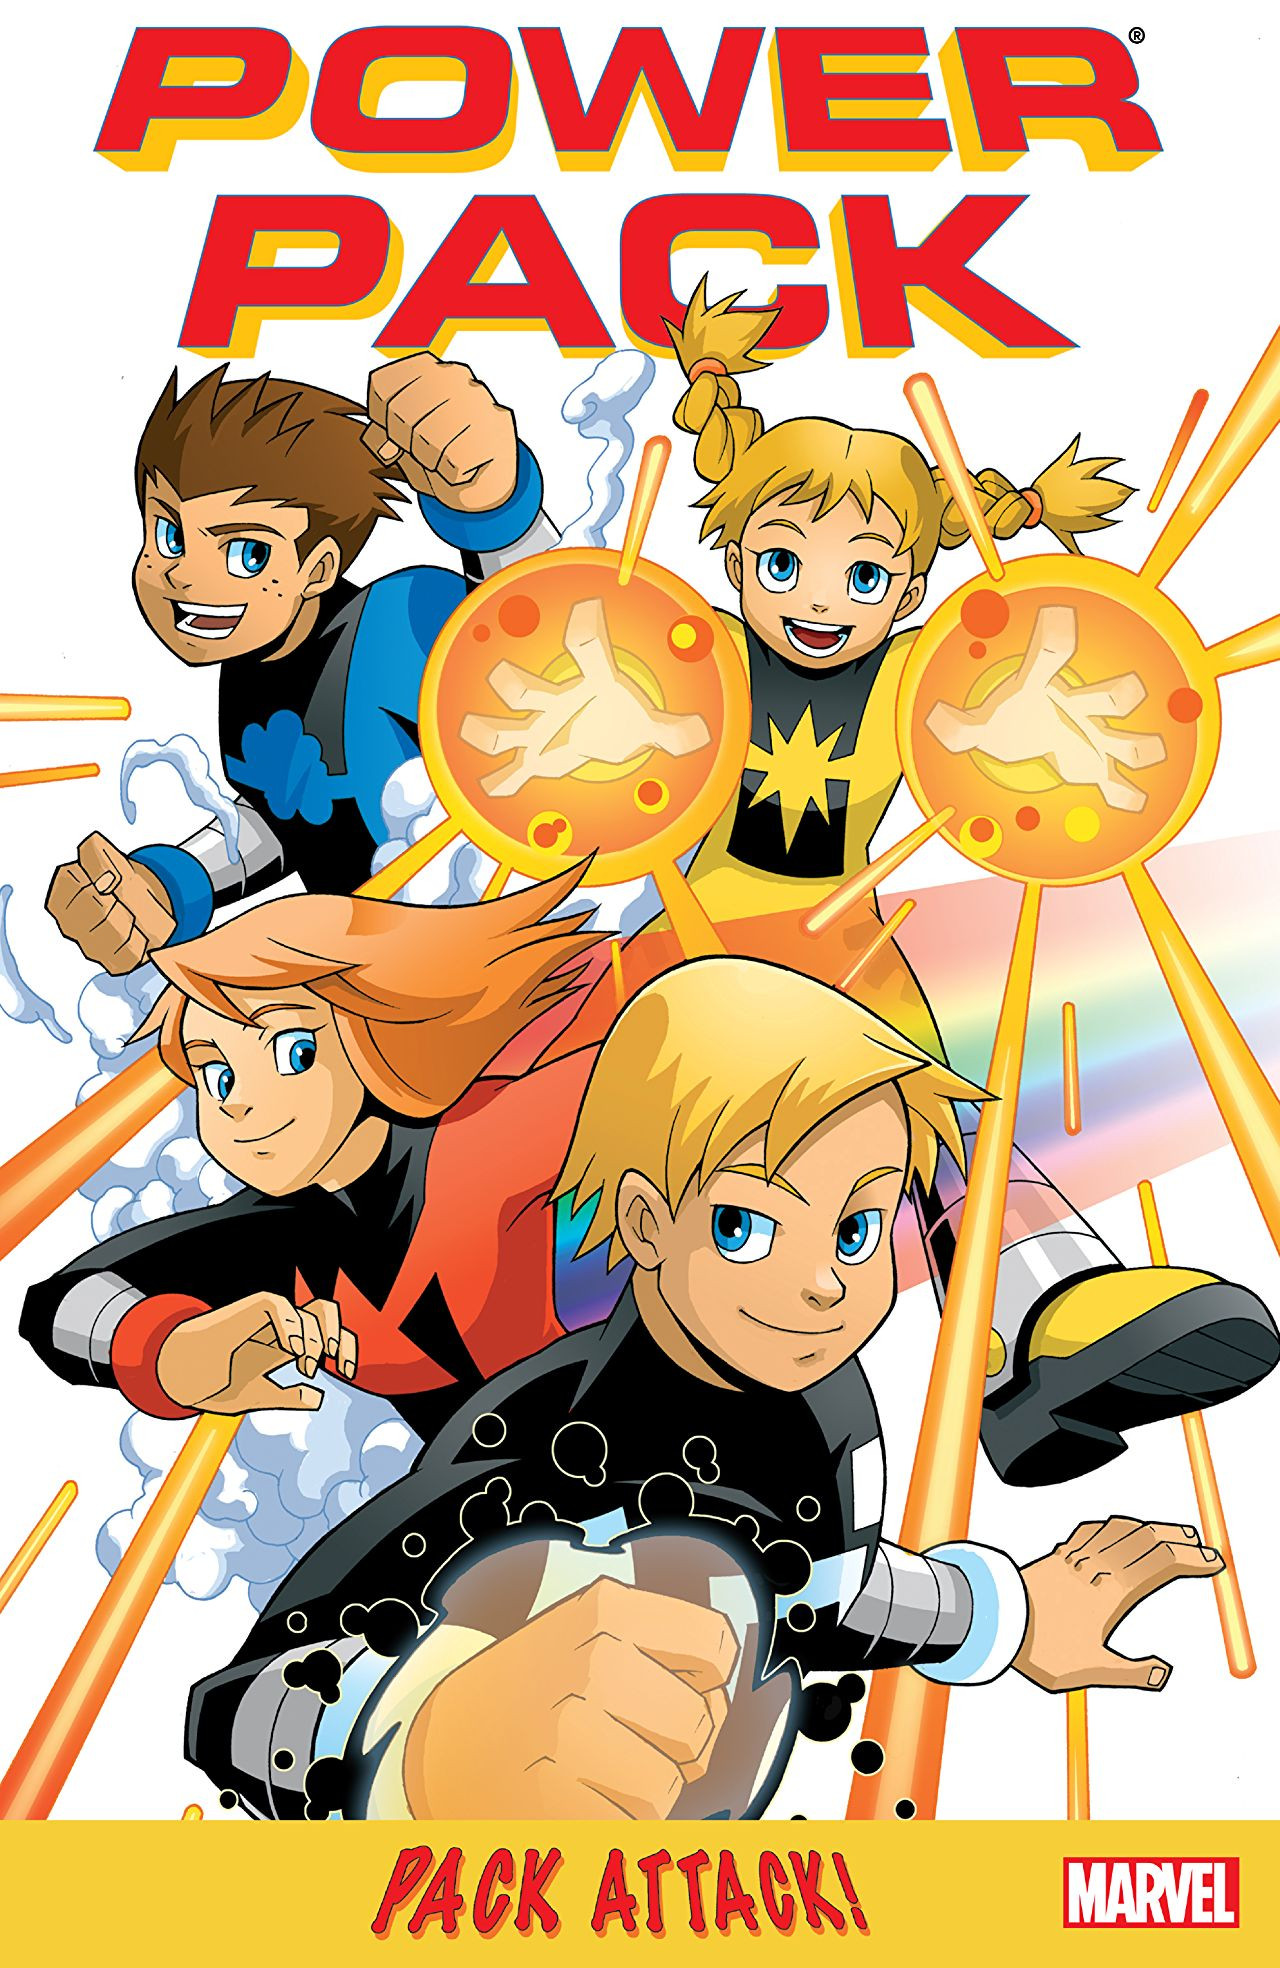 Power Pack TPB Vol 3 1: Pack Attack!